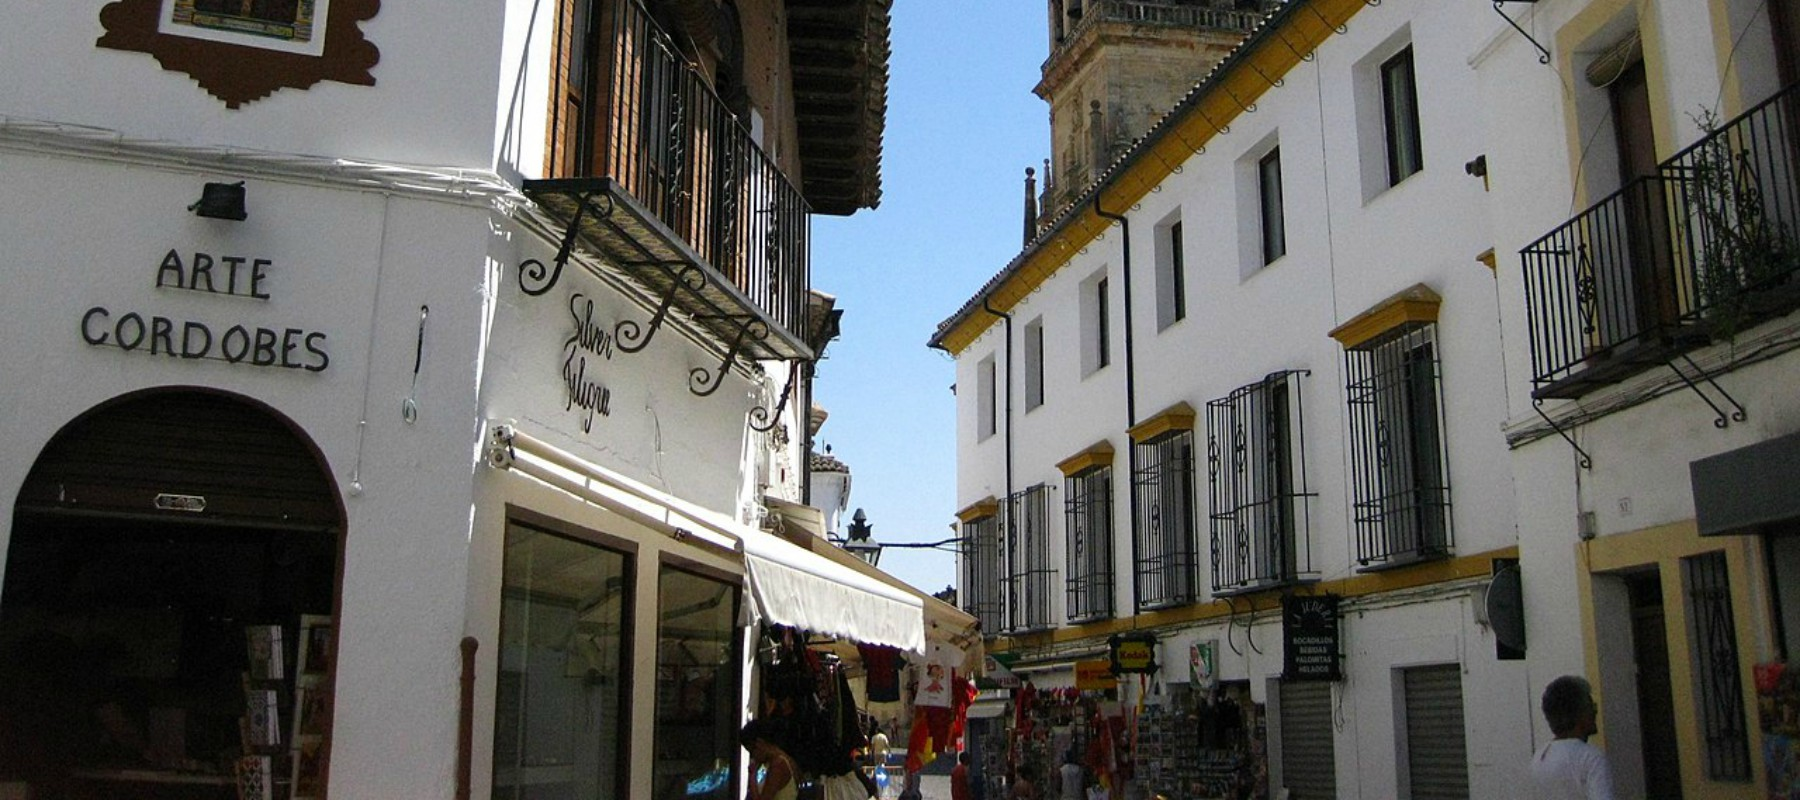 Located in Cordoba city centre